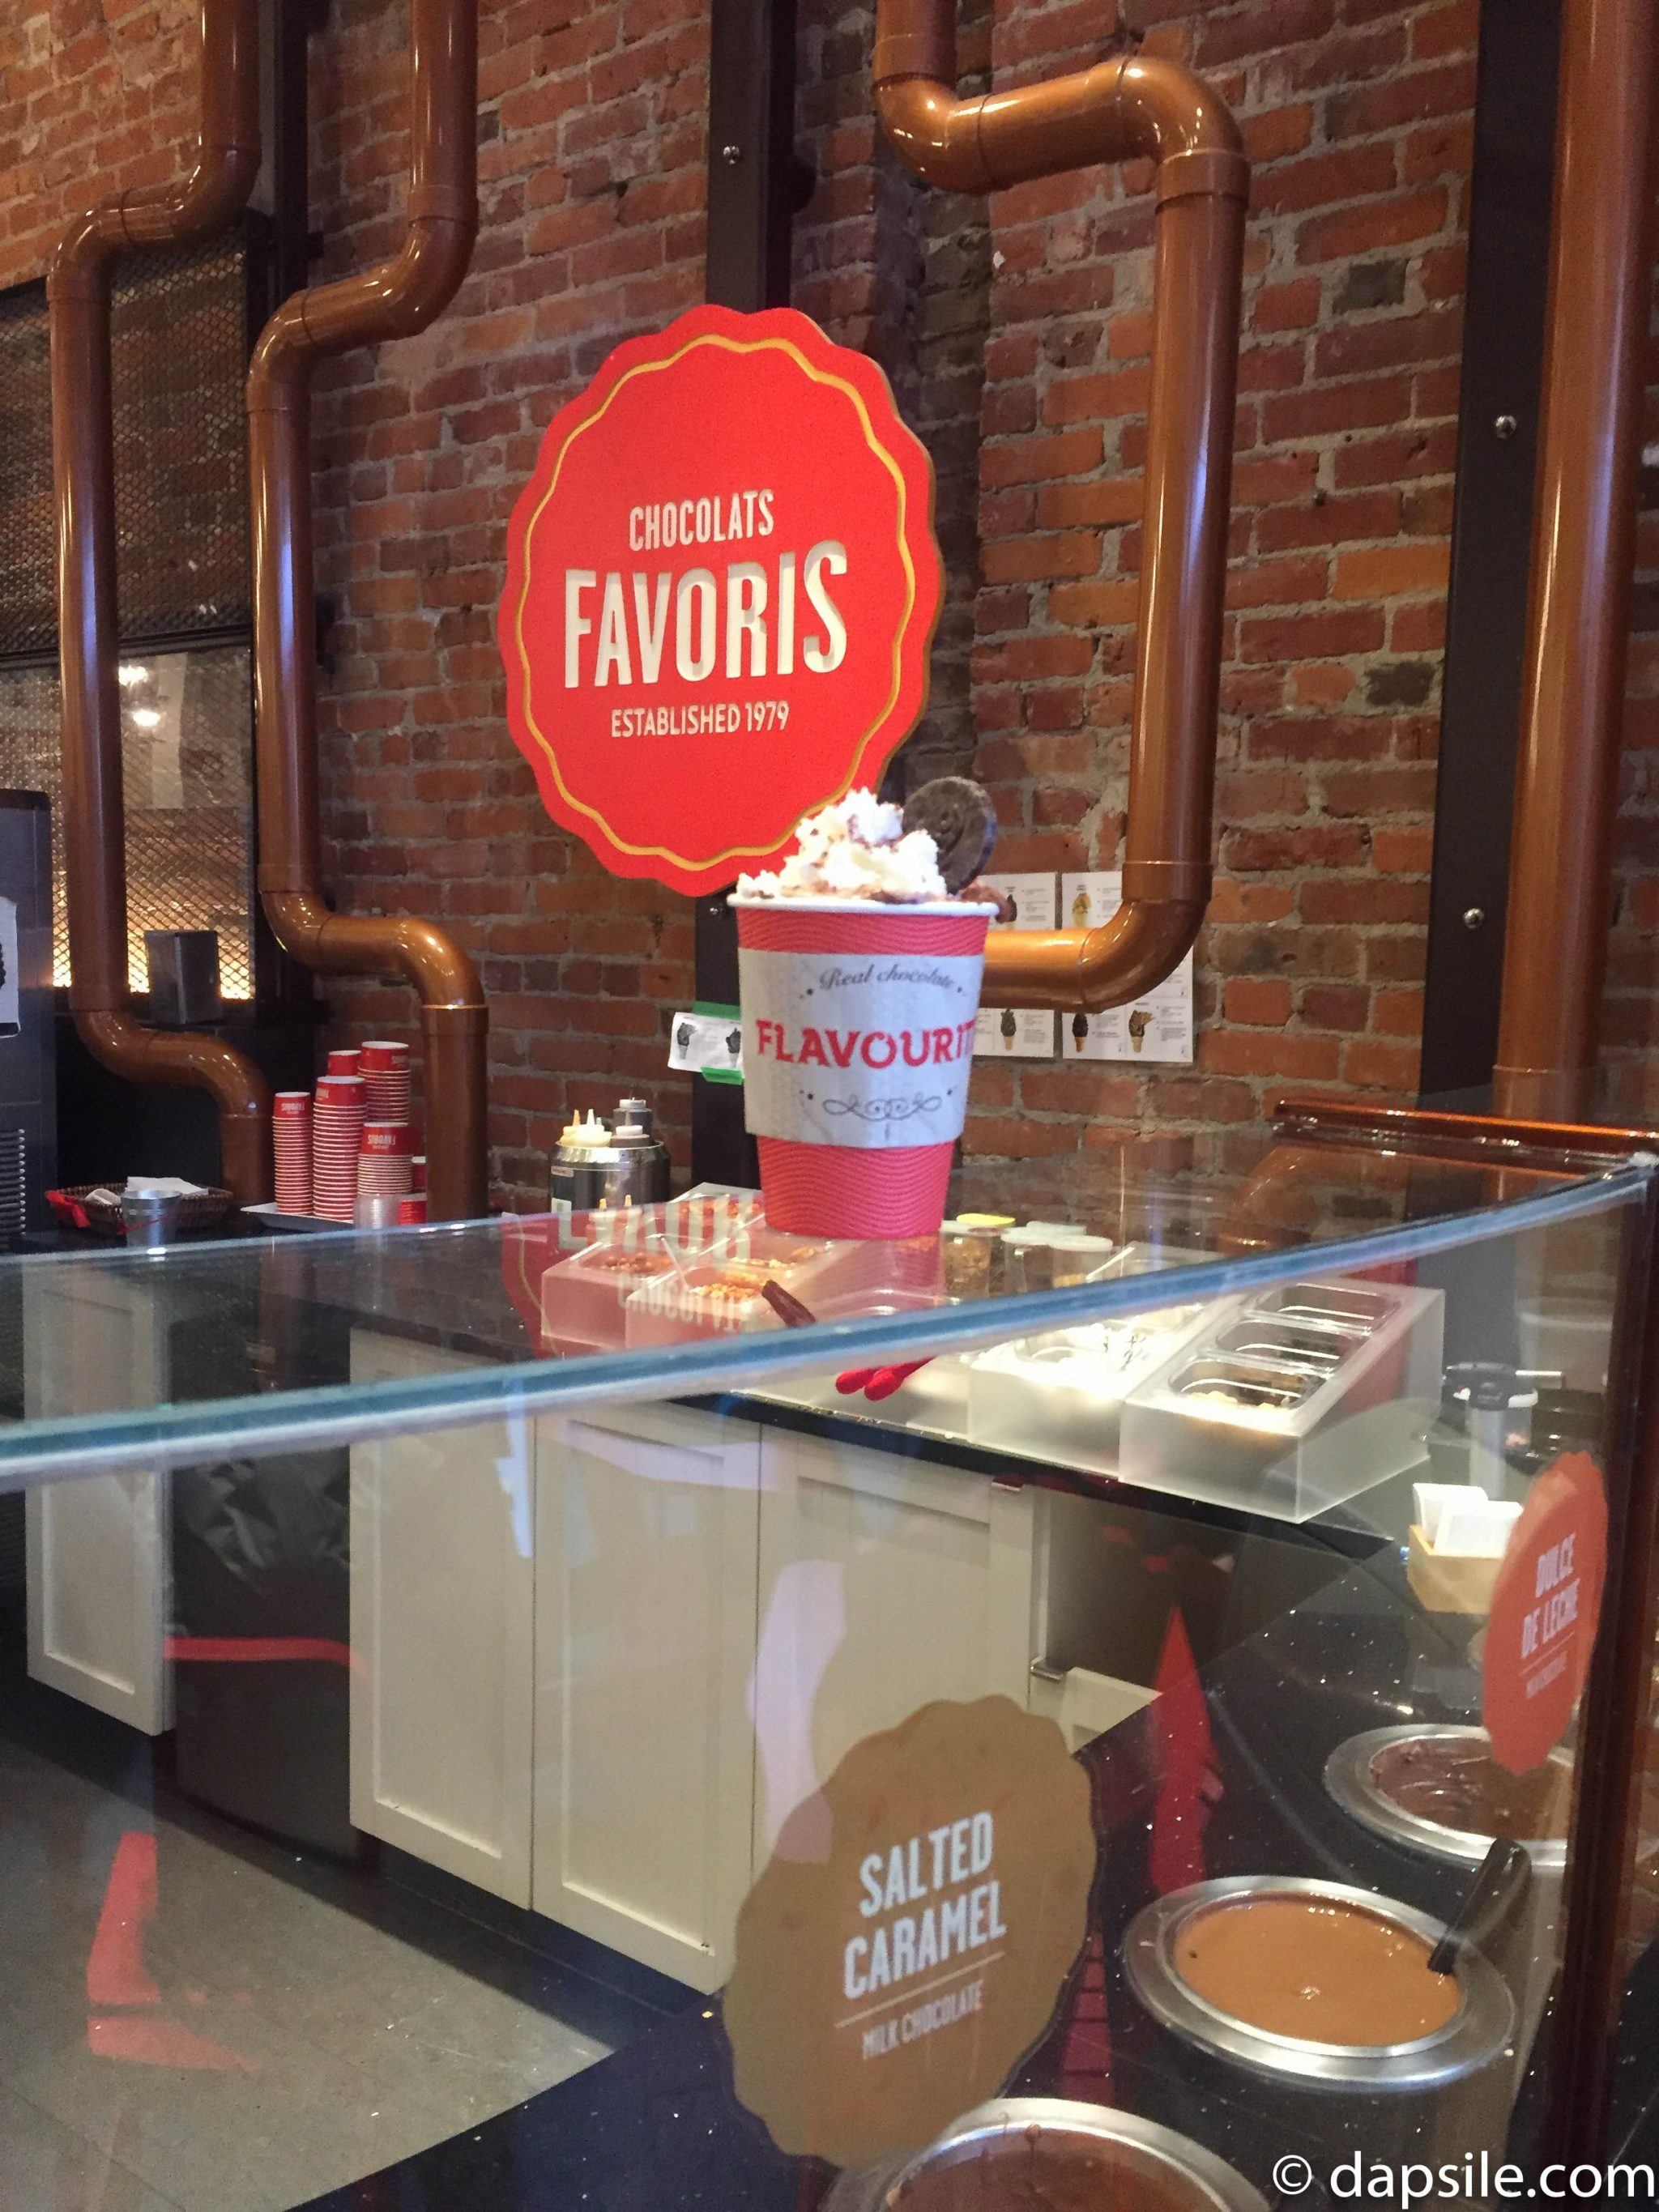 Things to do in Victoria Chocolats Favoris Hot Chocolate